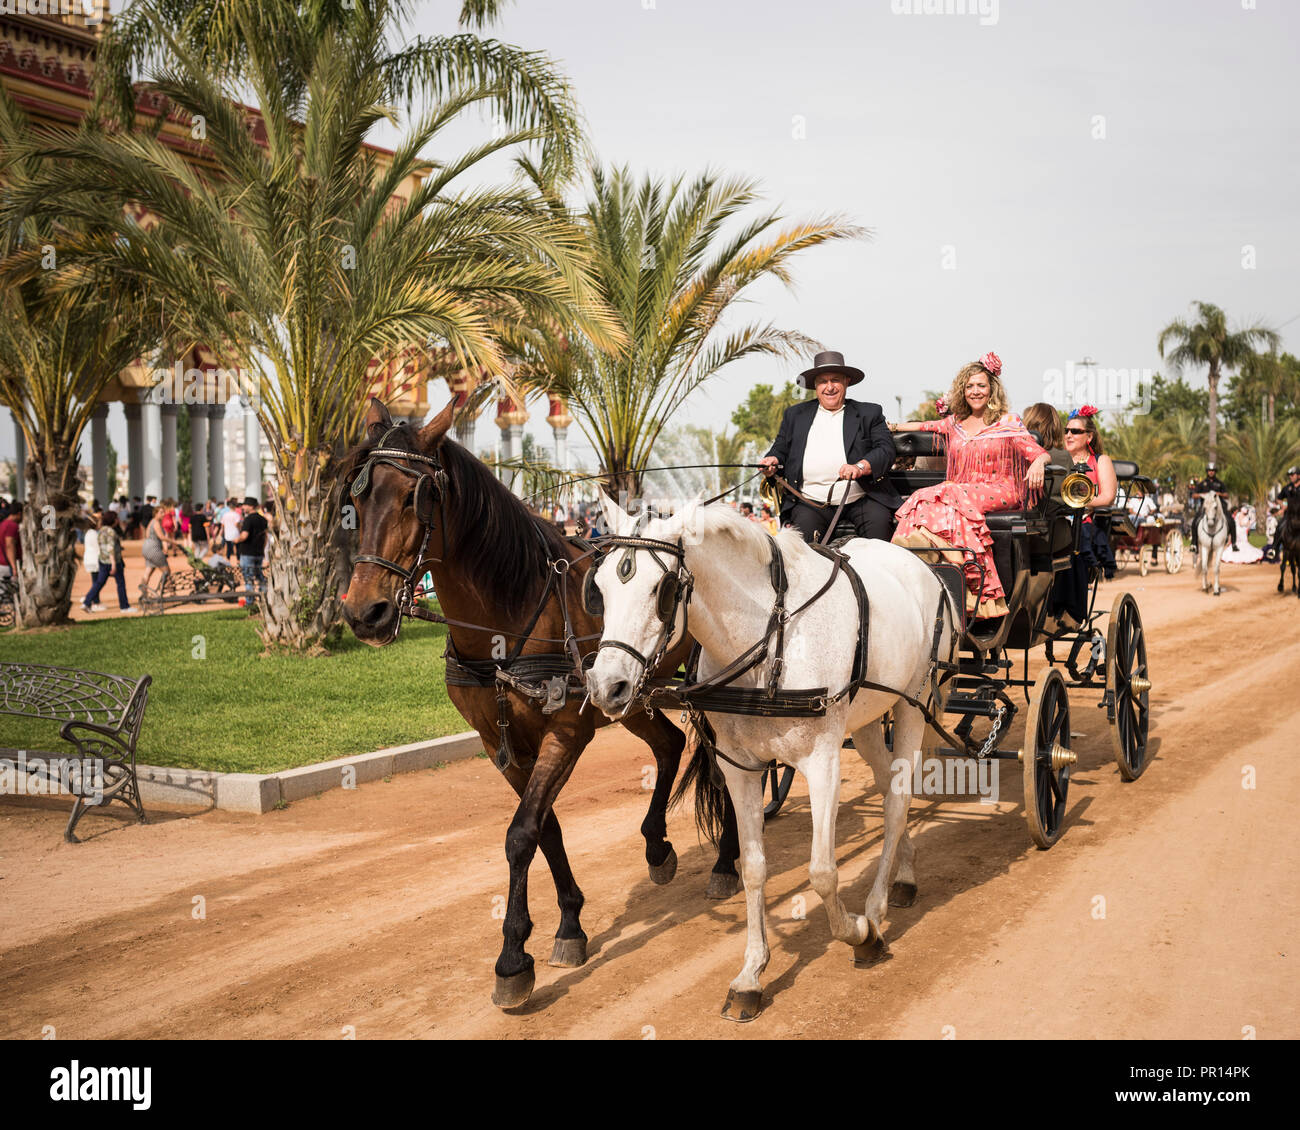 Feira de Cordoba, Cordoue, Andalousie, Espagne, Europe Photo Stock